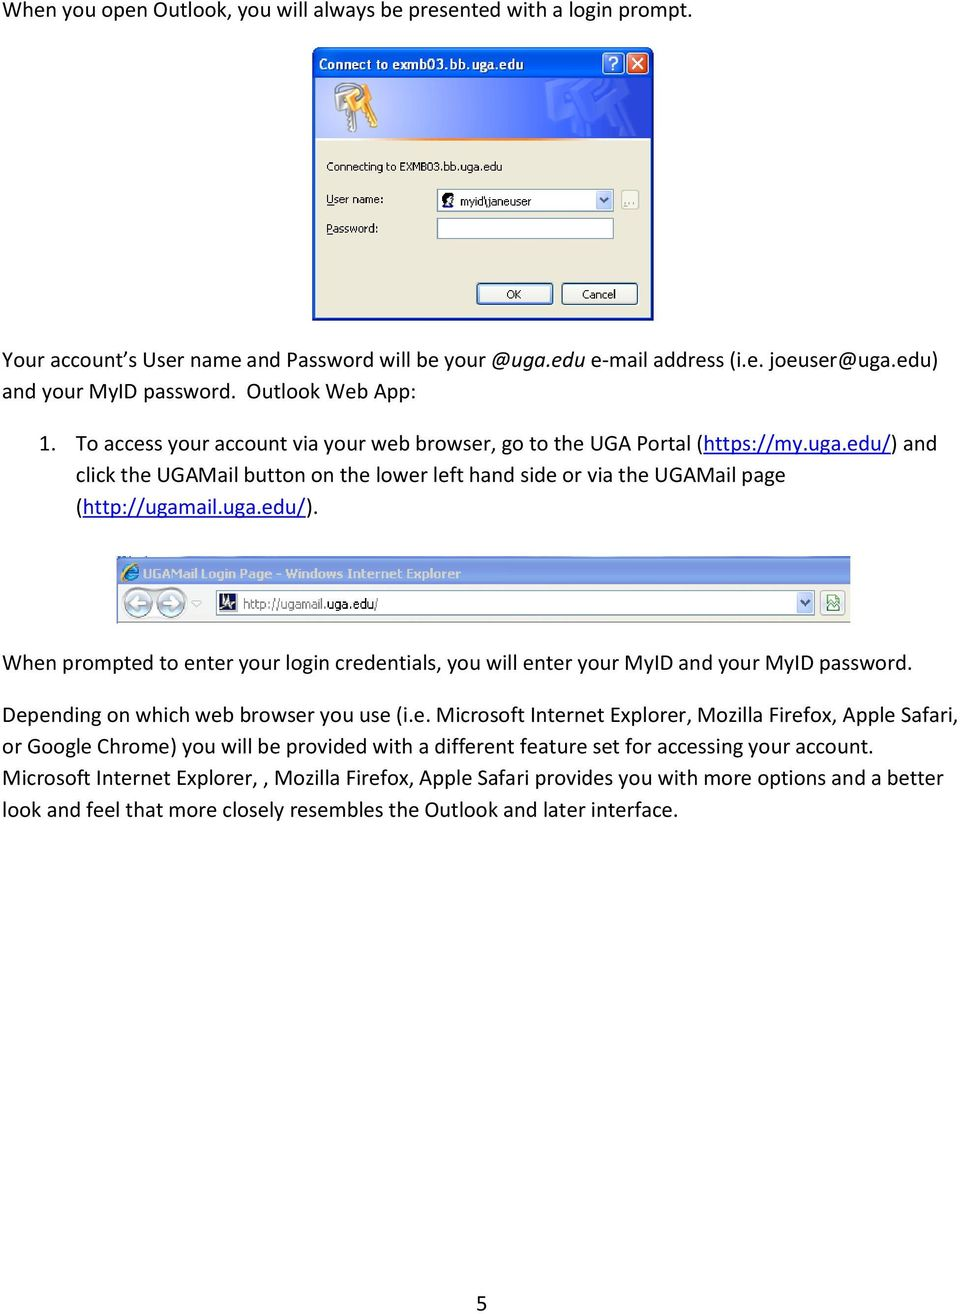 edu/) and click the UGAMail button on the lower left hand side or via the UGAMail page (http://ugamail.uga.edu/). When prompted to enter your login credentials, you will enter your MyID and your MyID password.